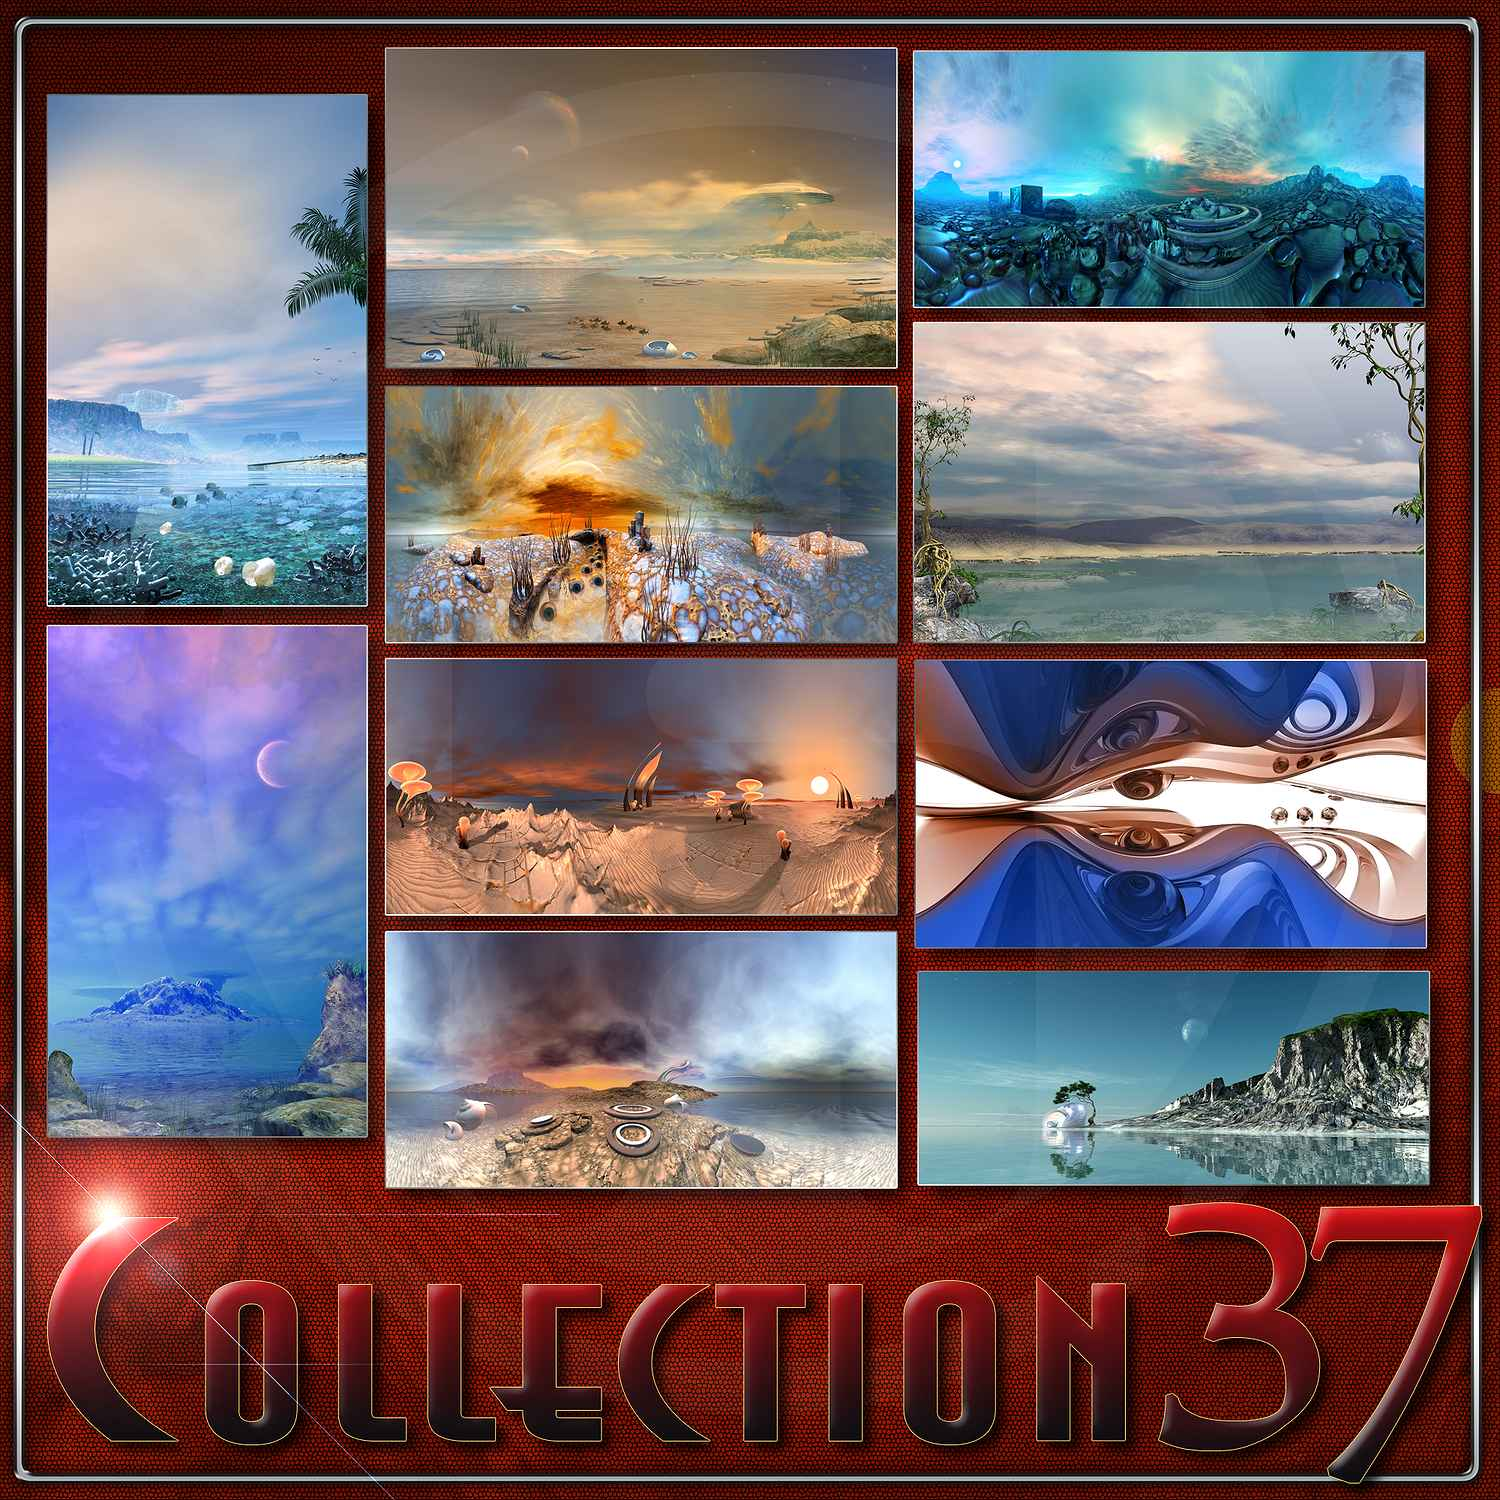 Collection_37